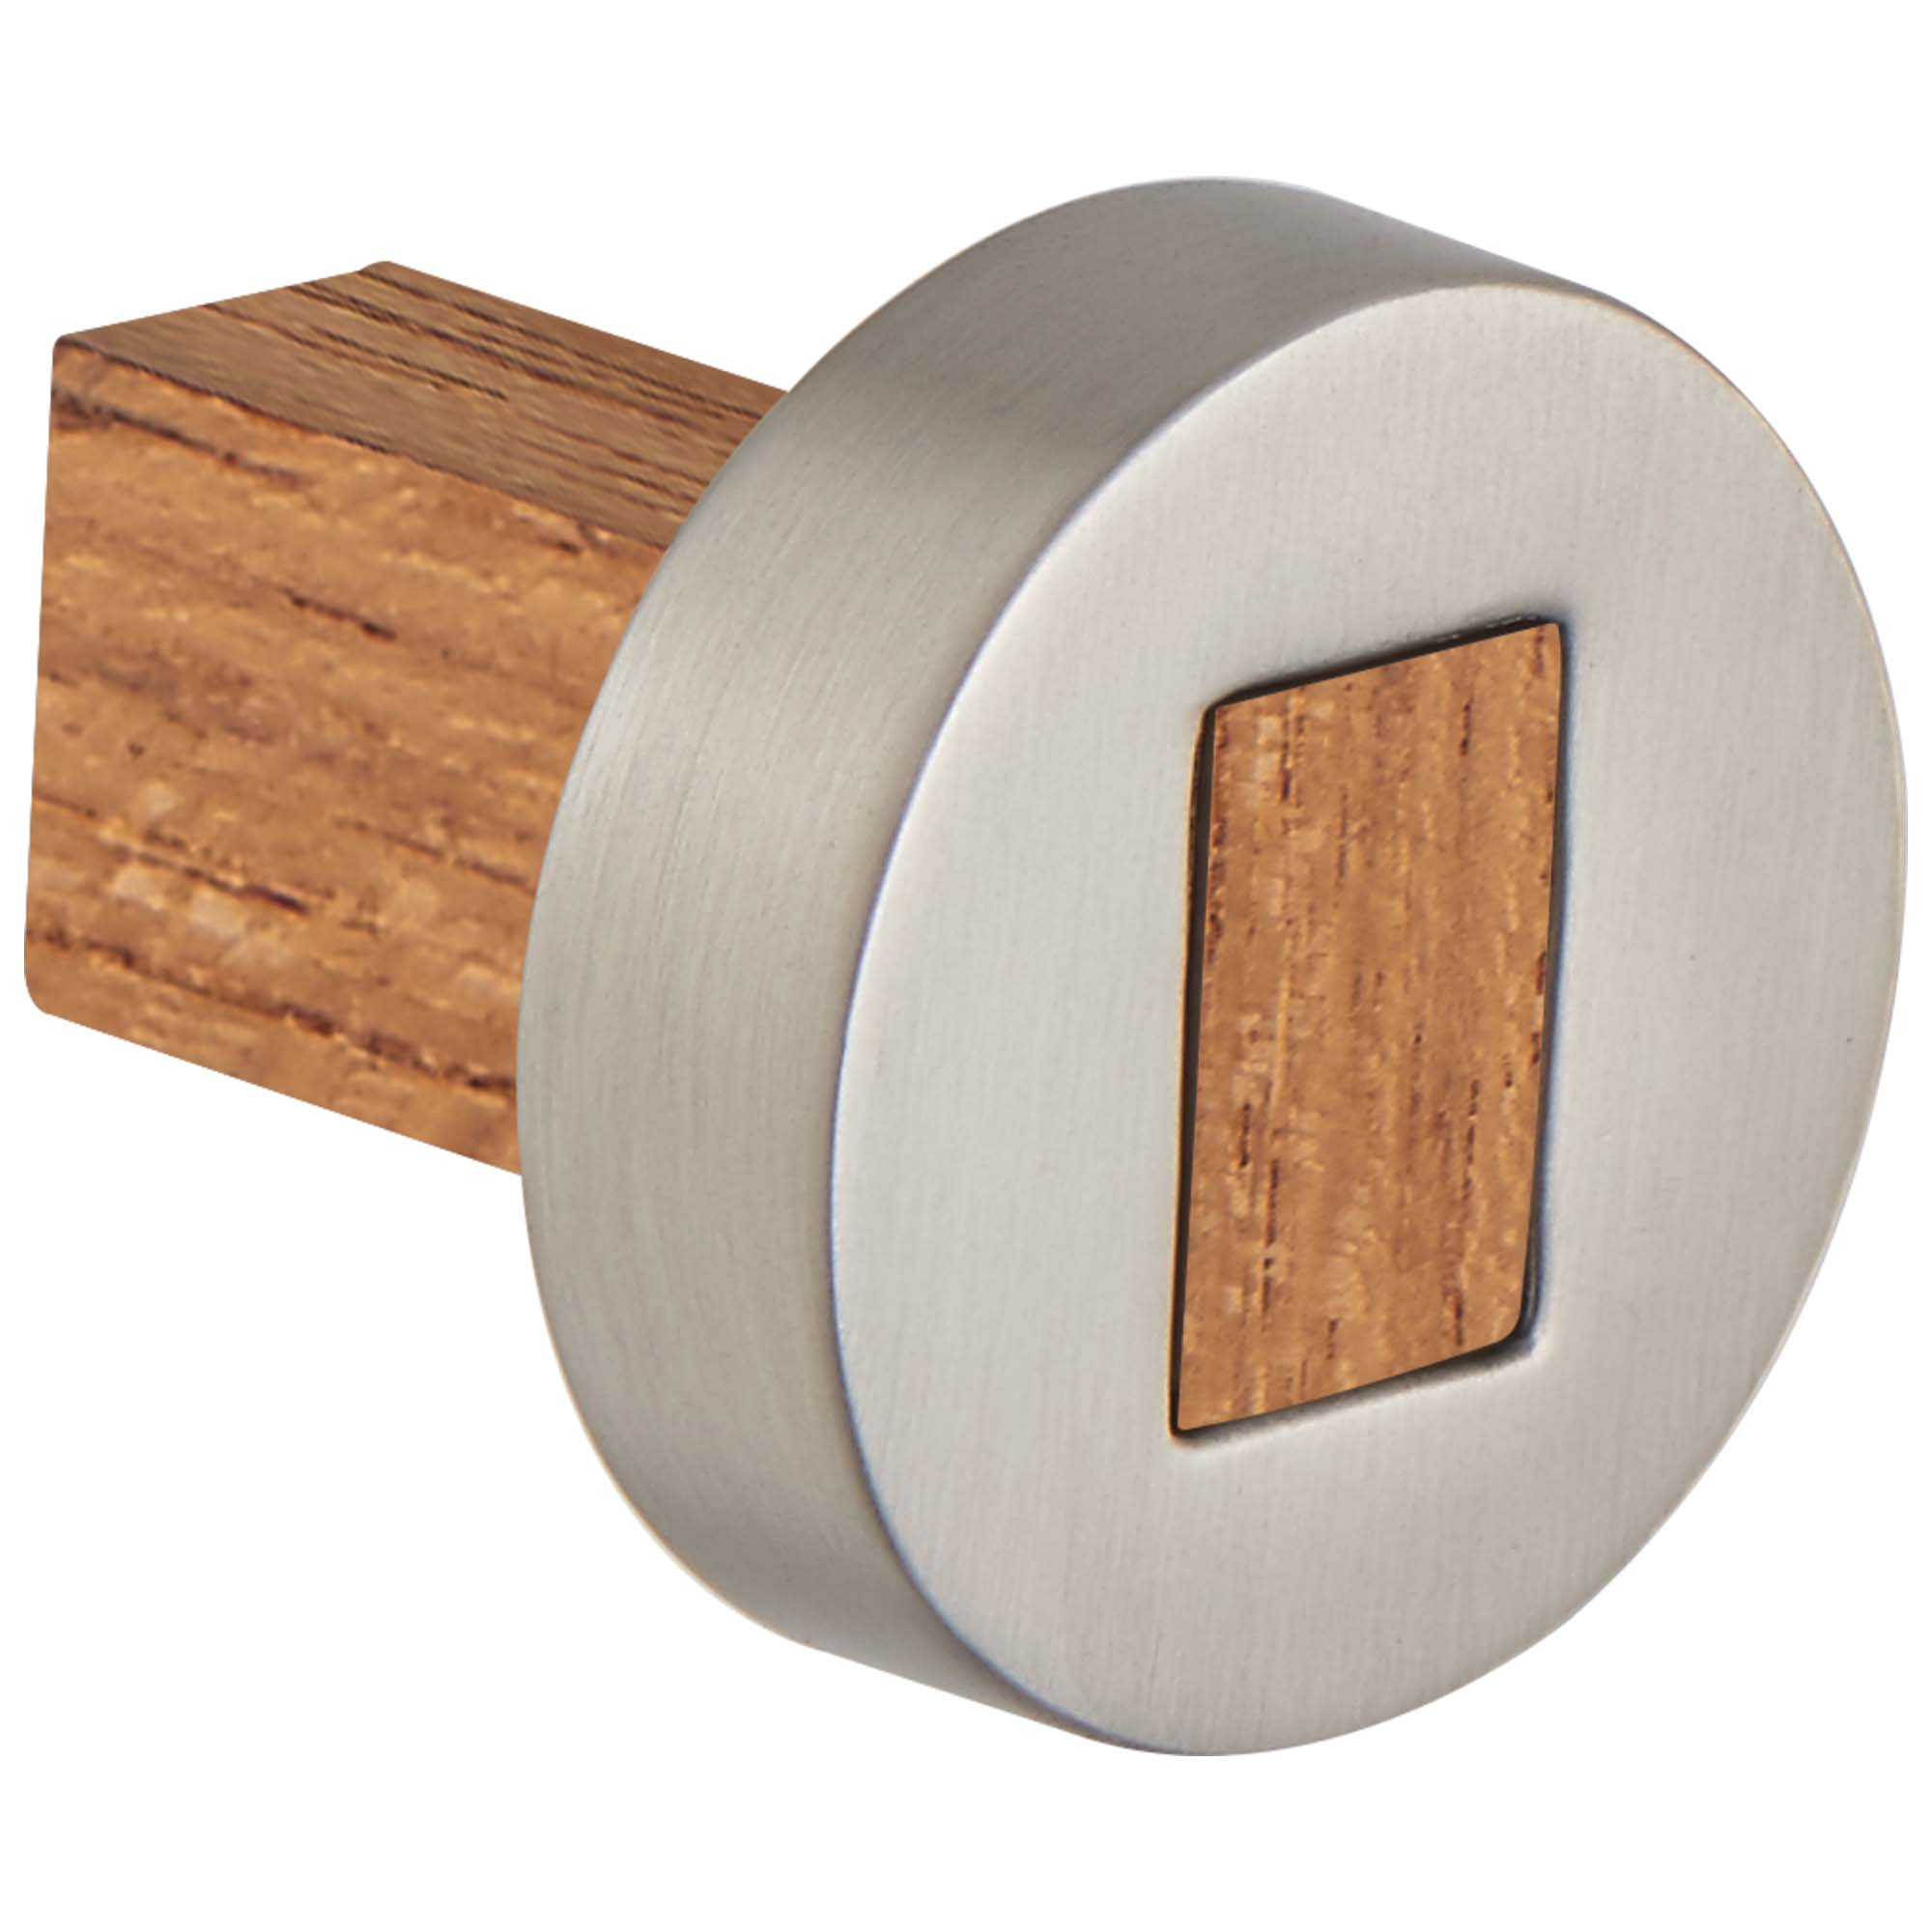 Brizo 699235-NKTK Litze Drawer Knob - Luxe Nickel/Teak Wood